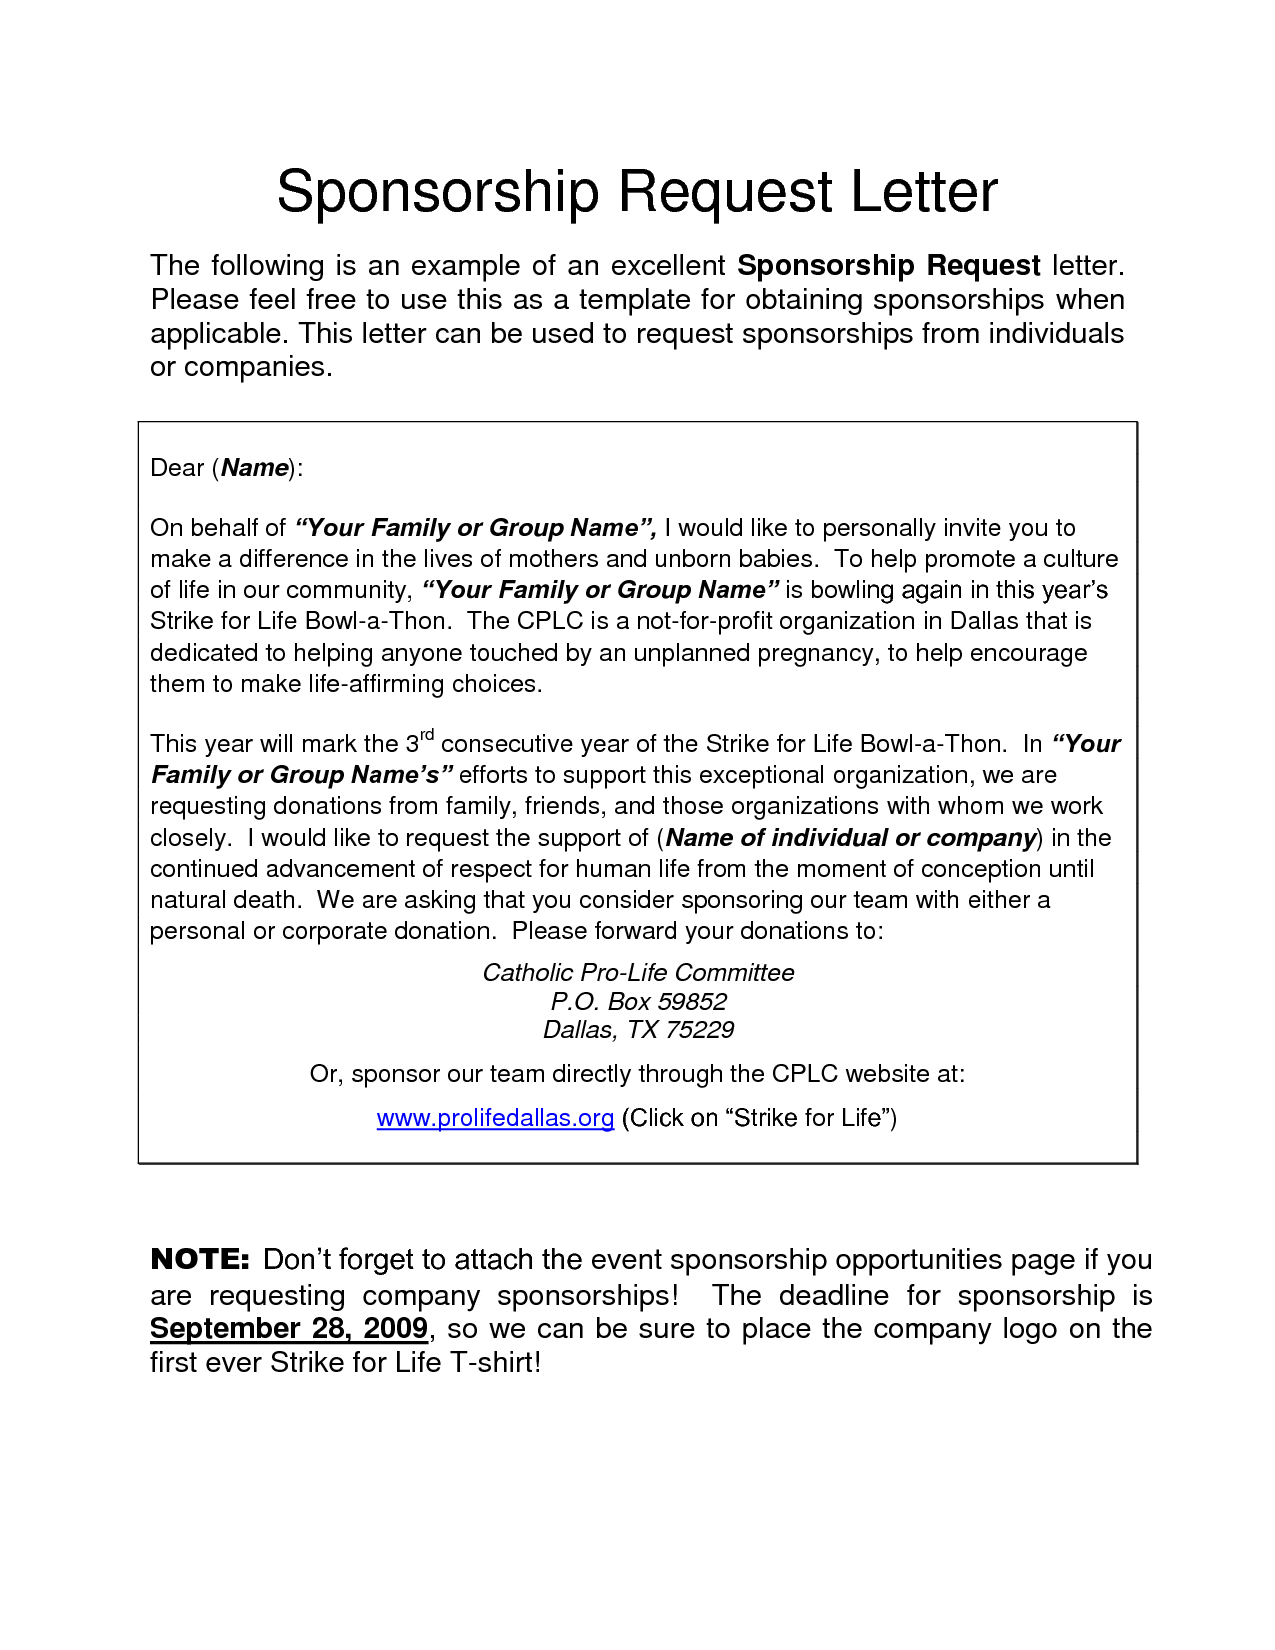 Corporate sponsorship request letter charity donation free sample corporate sponsorship request letter charity donation free sample letters altavistaventures